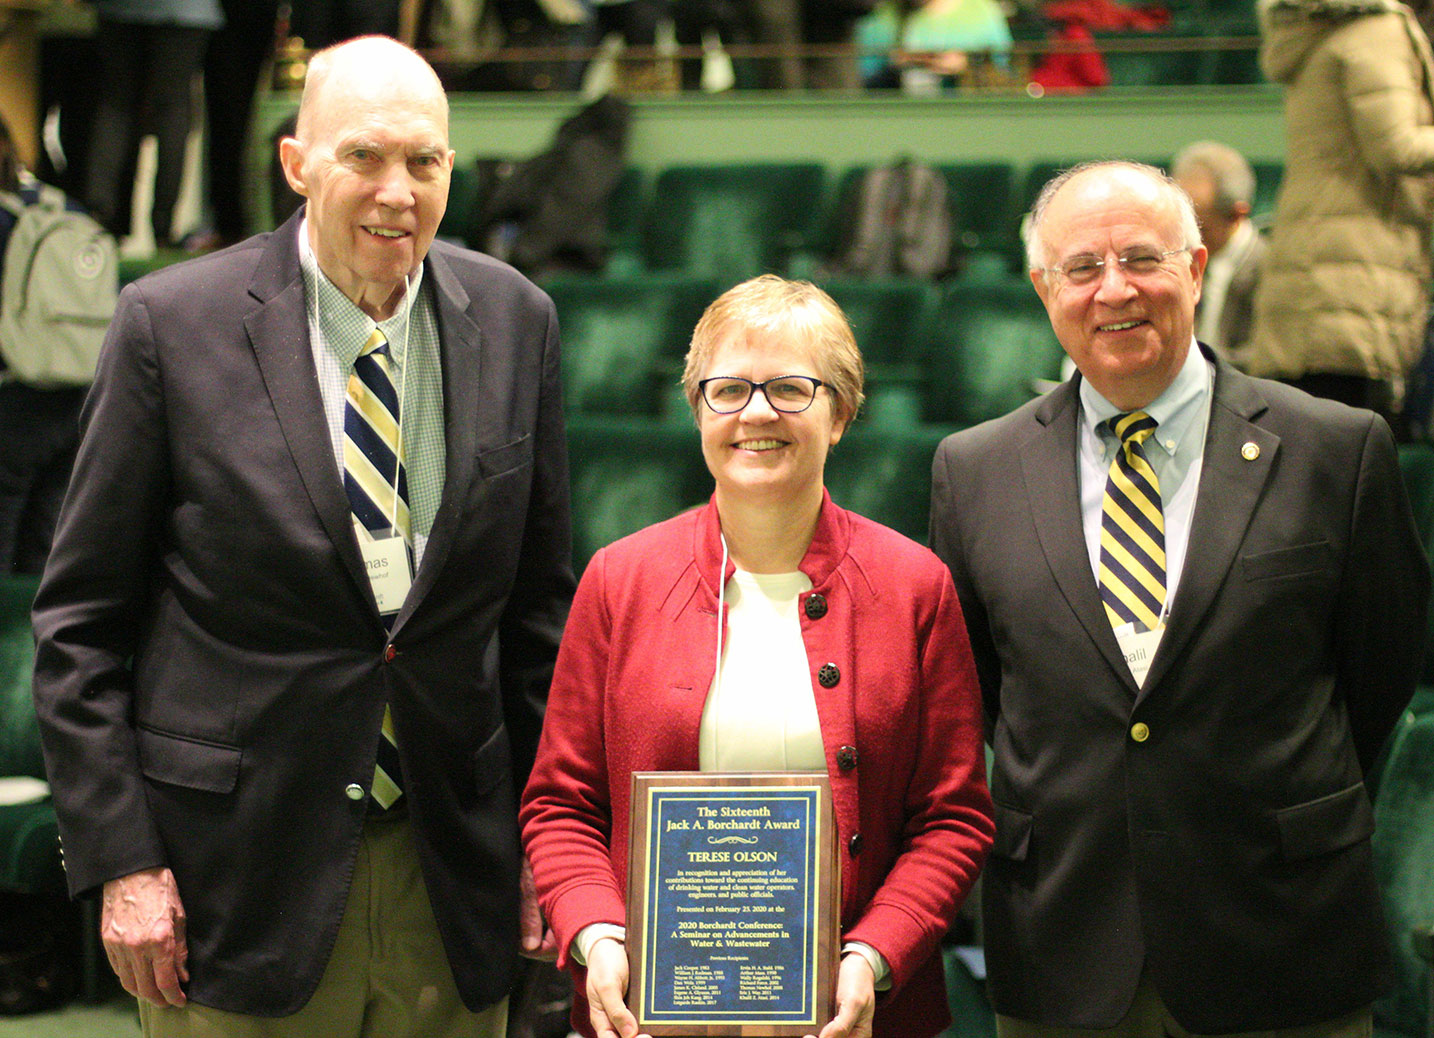 Terese Olson holds the Borchardt award plaque